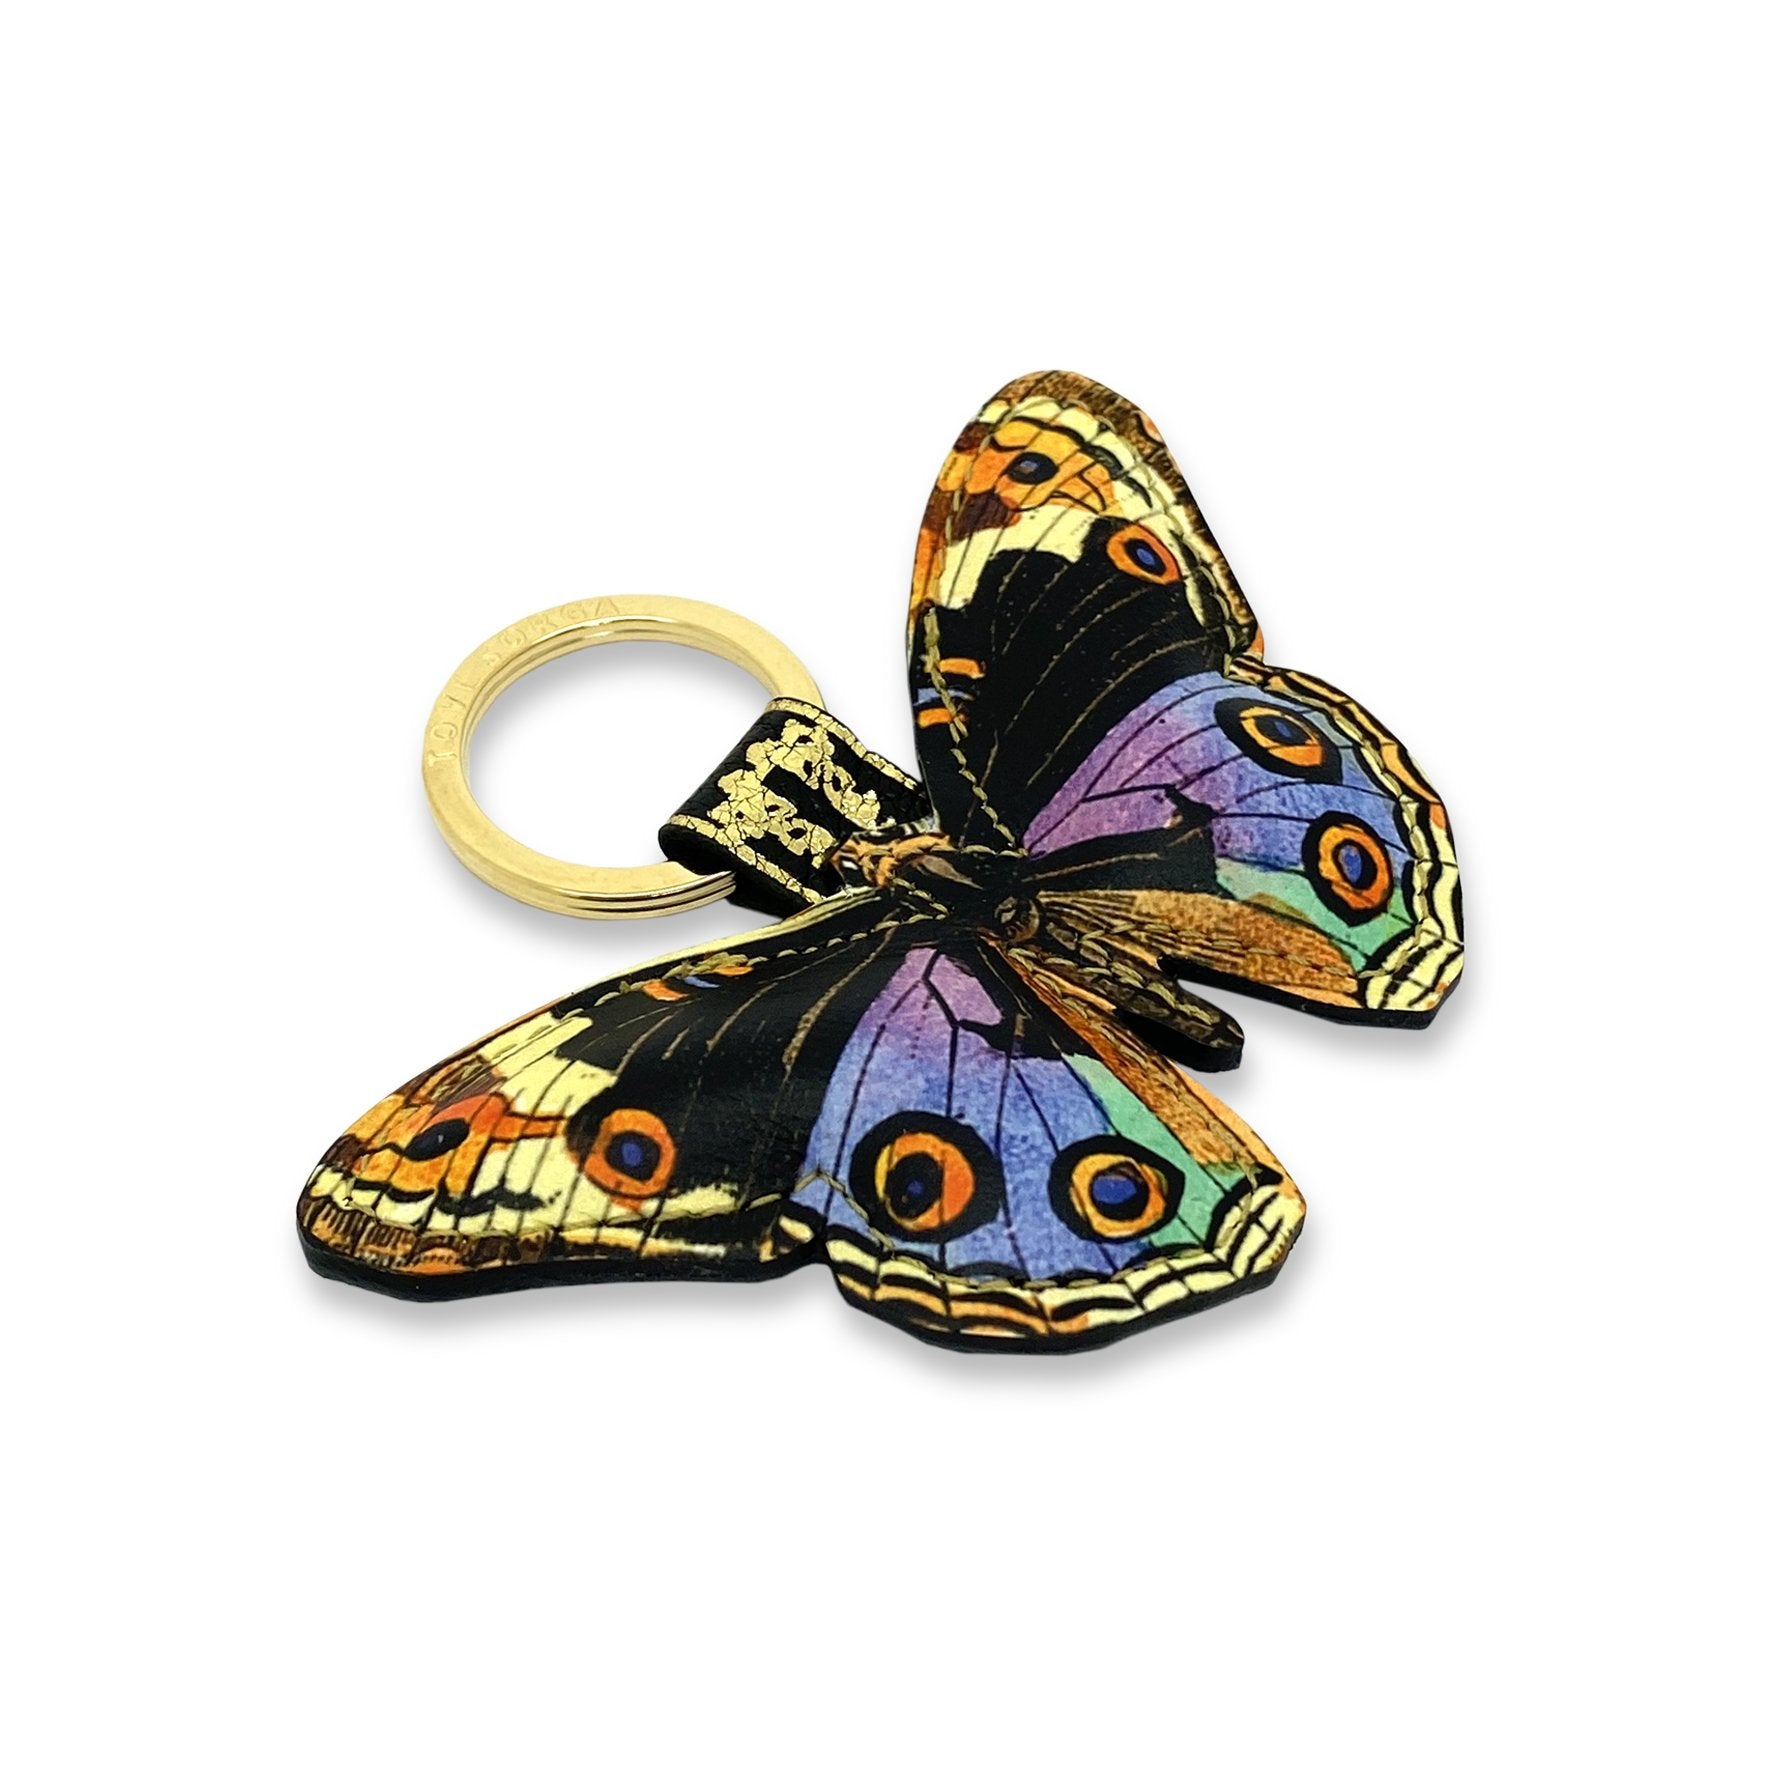 Leather Keyring / Bag Charm - Multicolour Butterfly Key Ring / Bag Charm Tovi Sorga